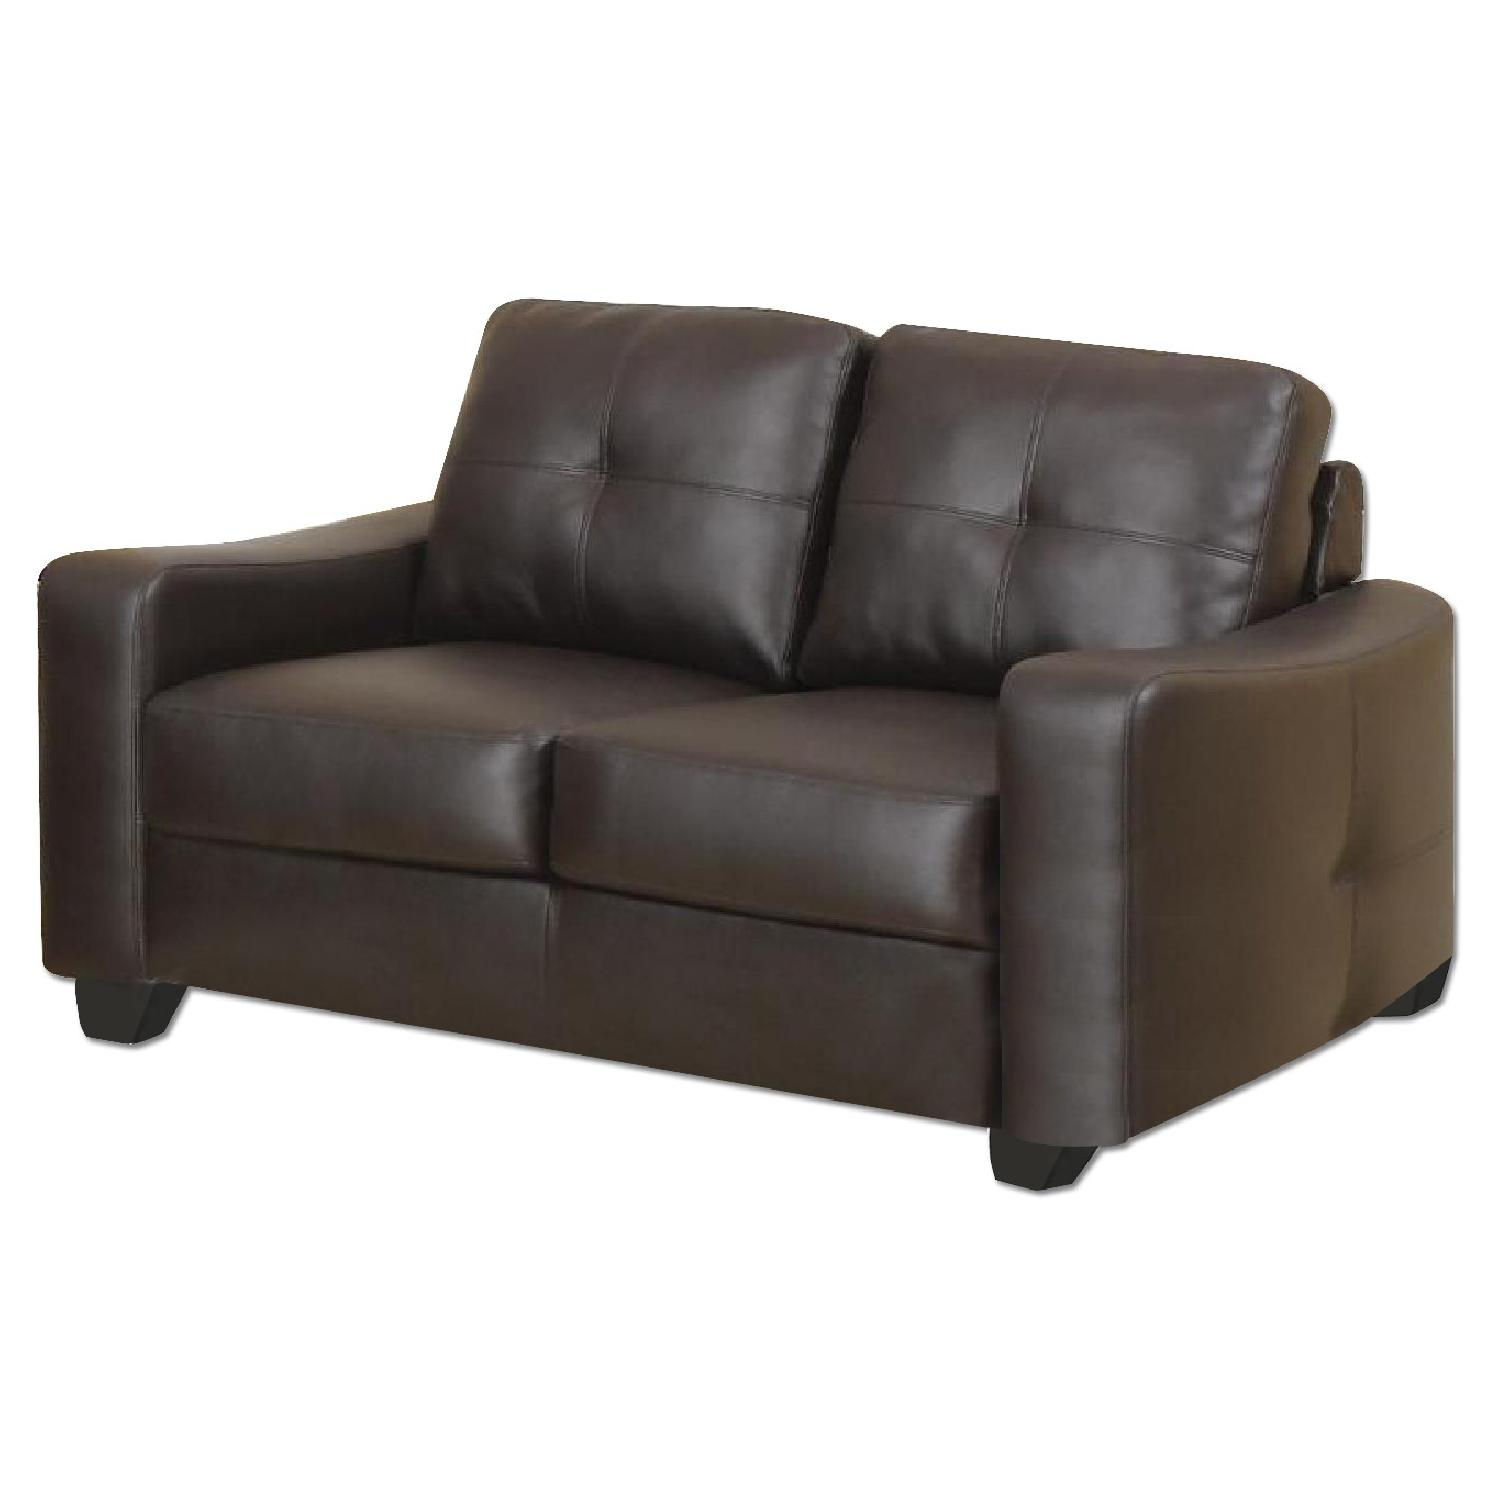 Brown Bonded Leather Loveseat w/ Curved Arms & Tufted Back &